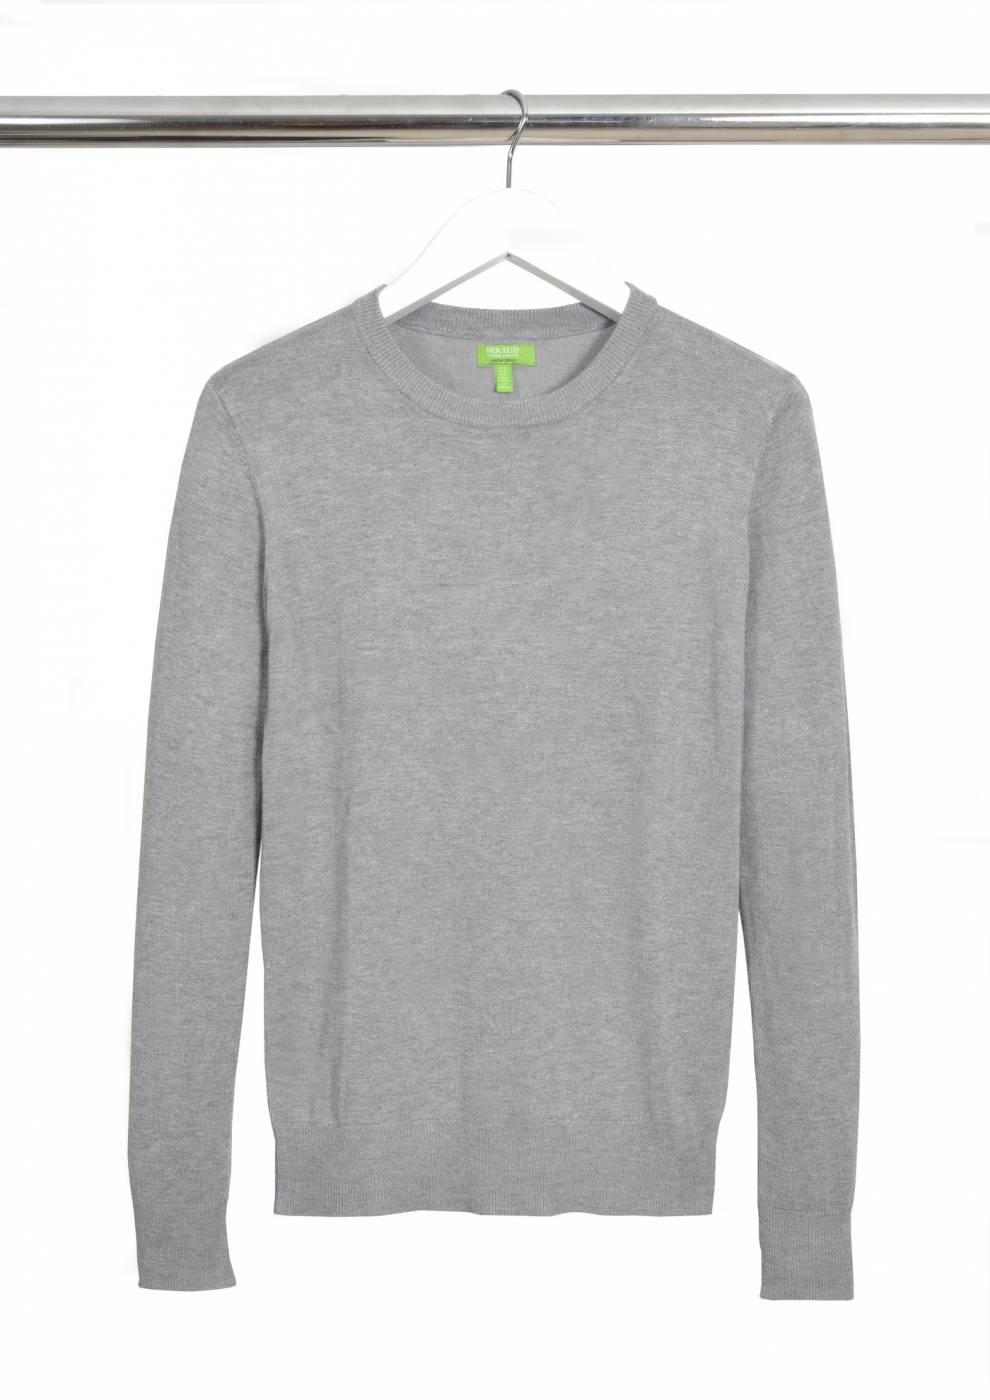 5.Connor-Grey-small